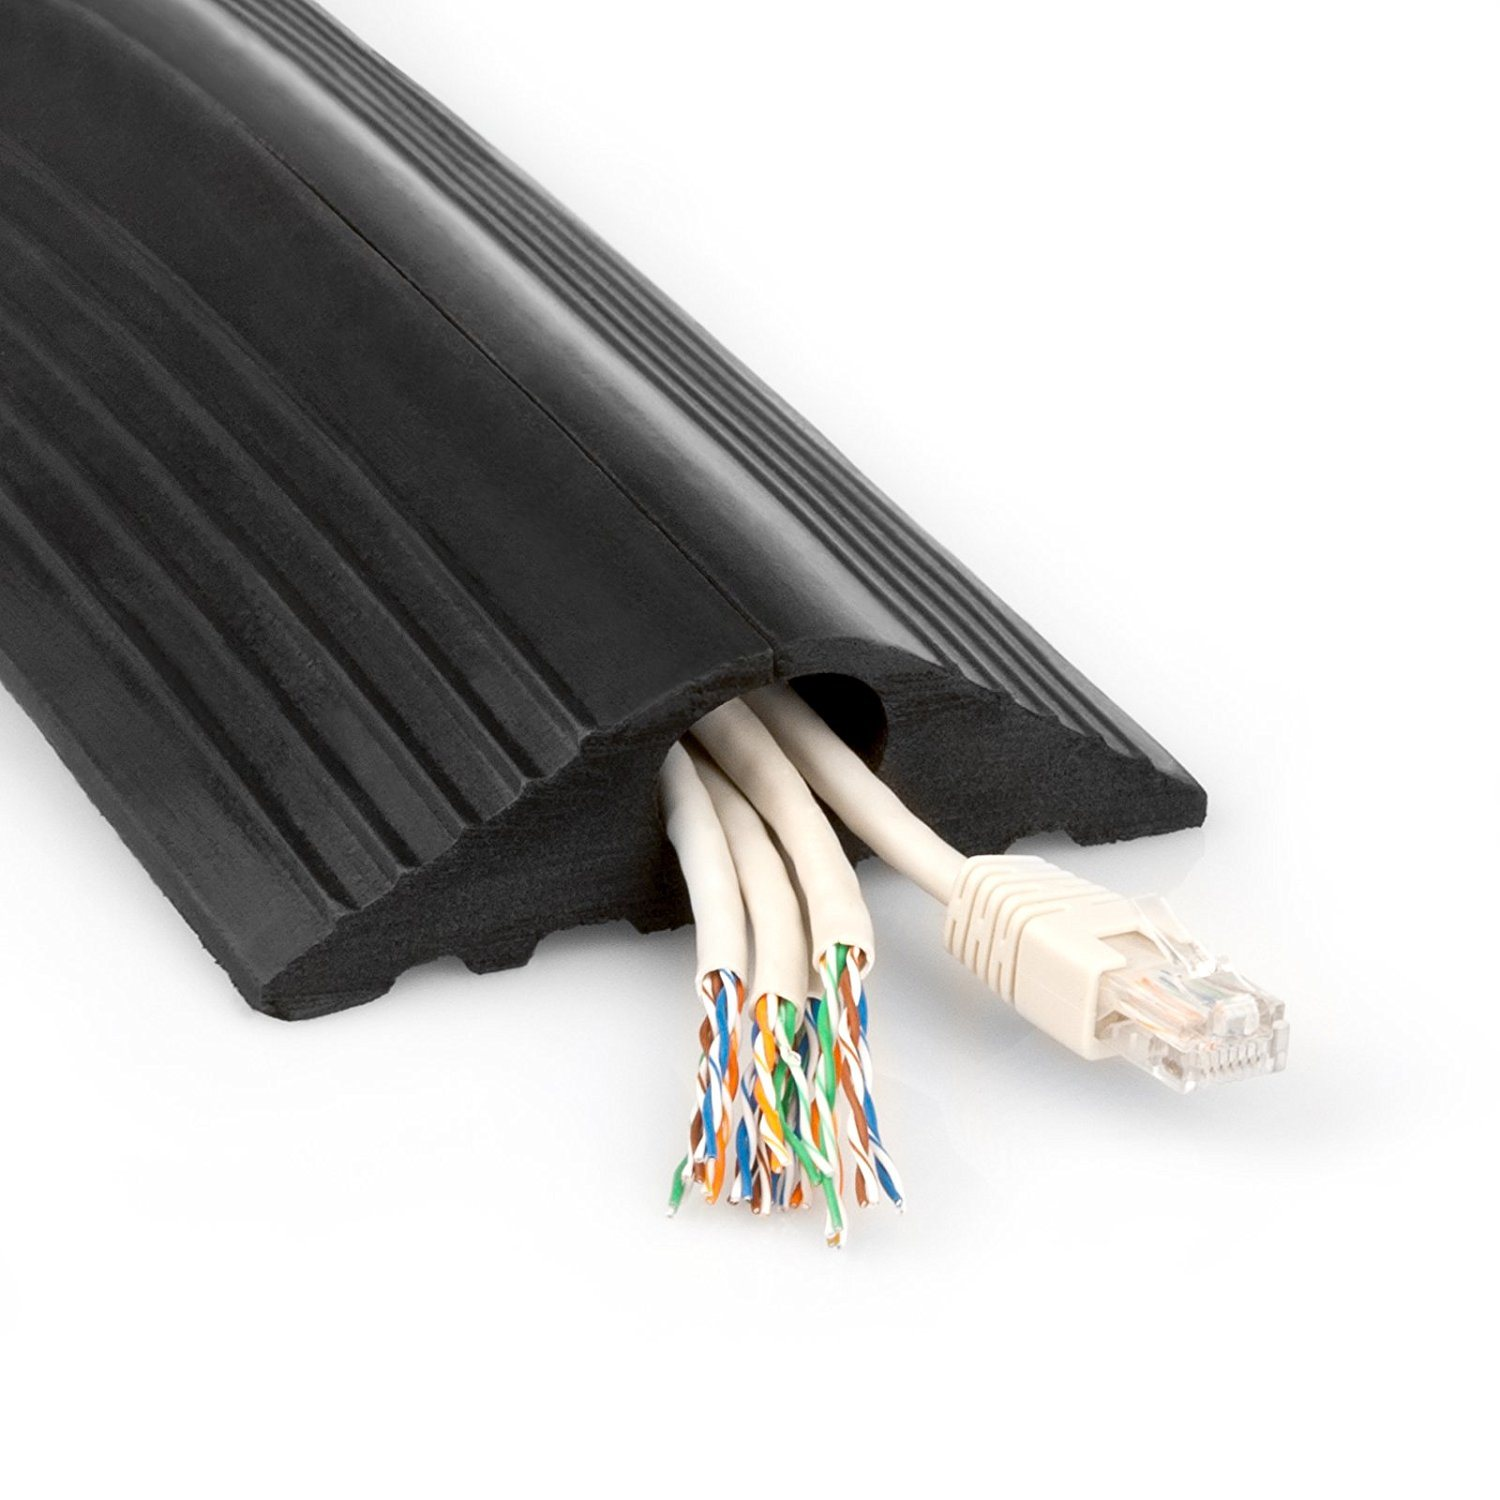 China Heavy Duty Rubber Cable & Wire Protector Photos & Pictures ...